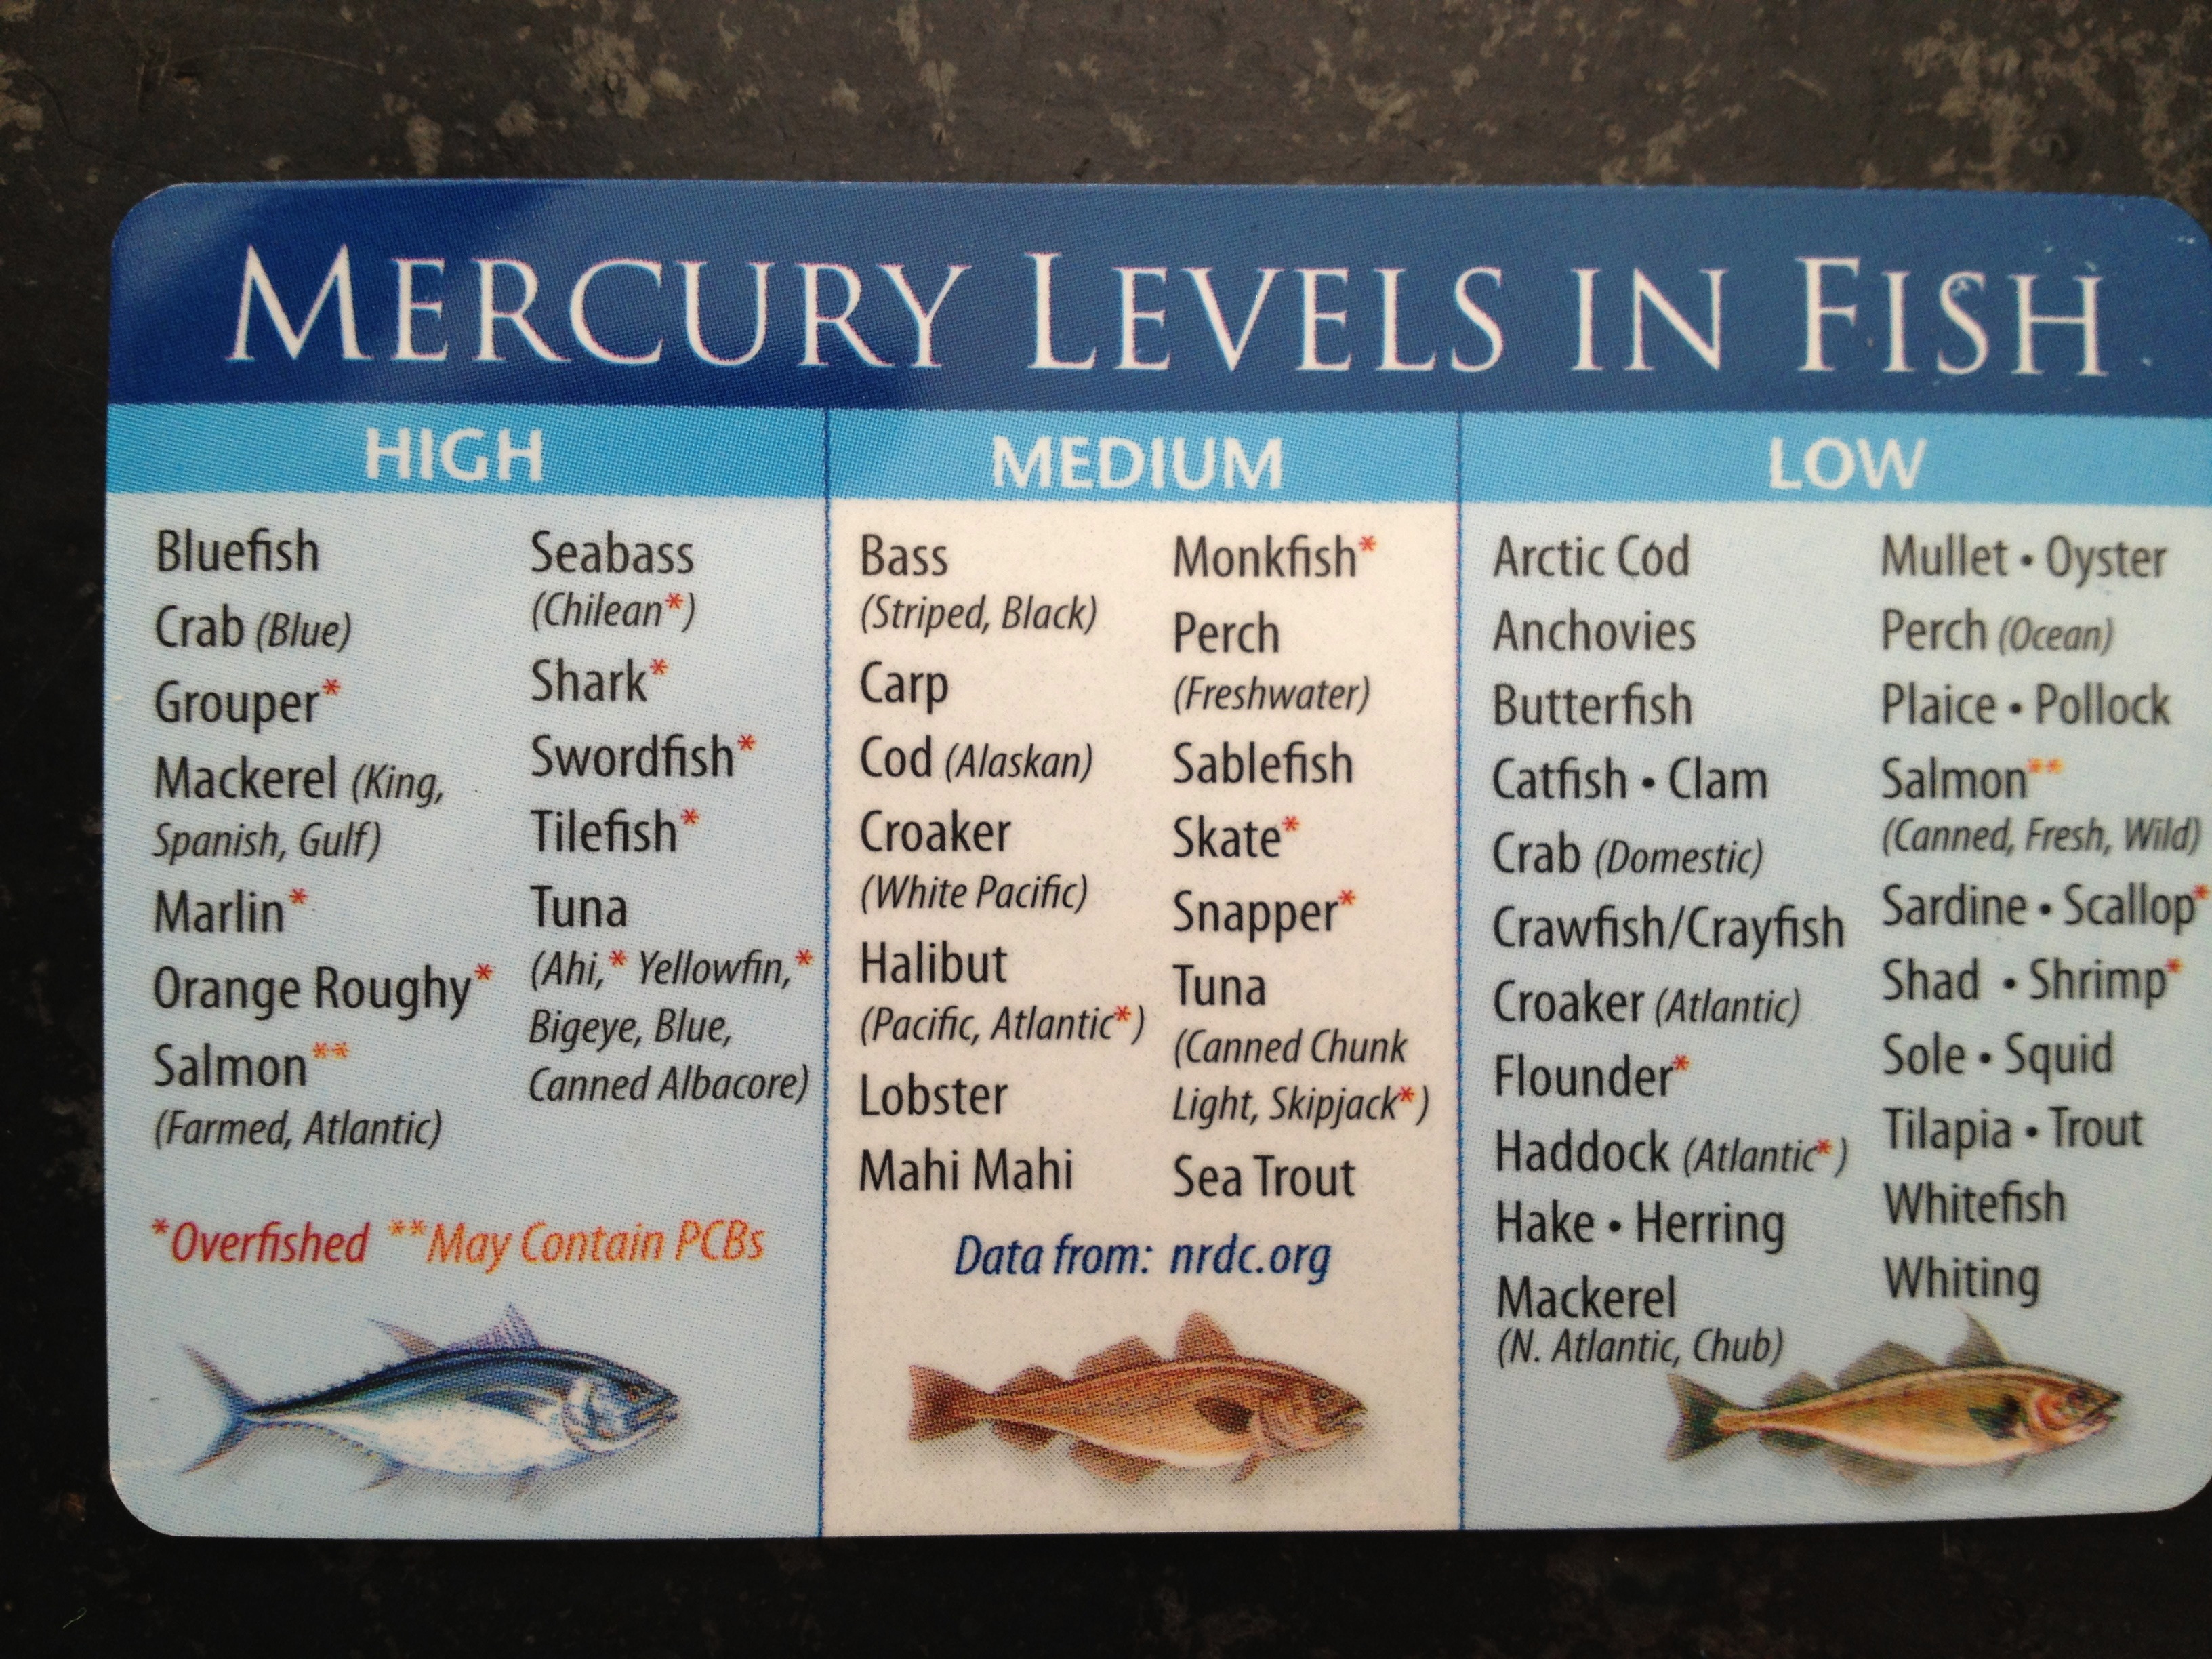 How to use the water eating regimen for Mercury levels in fish chart